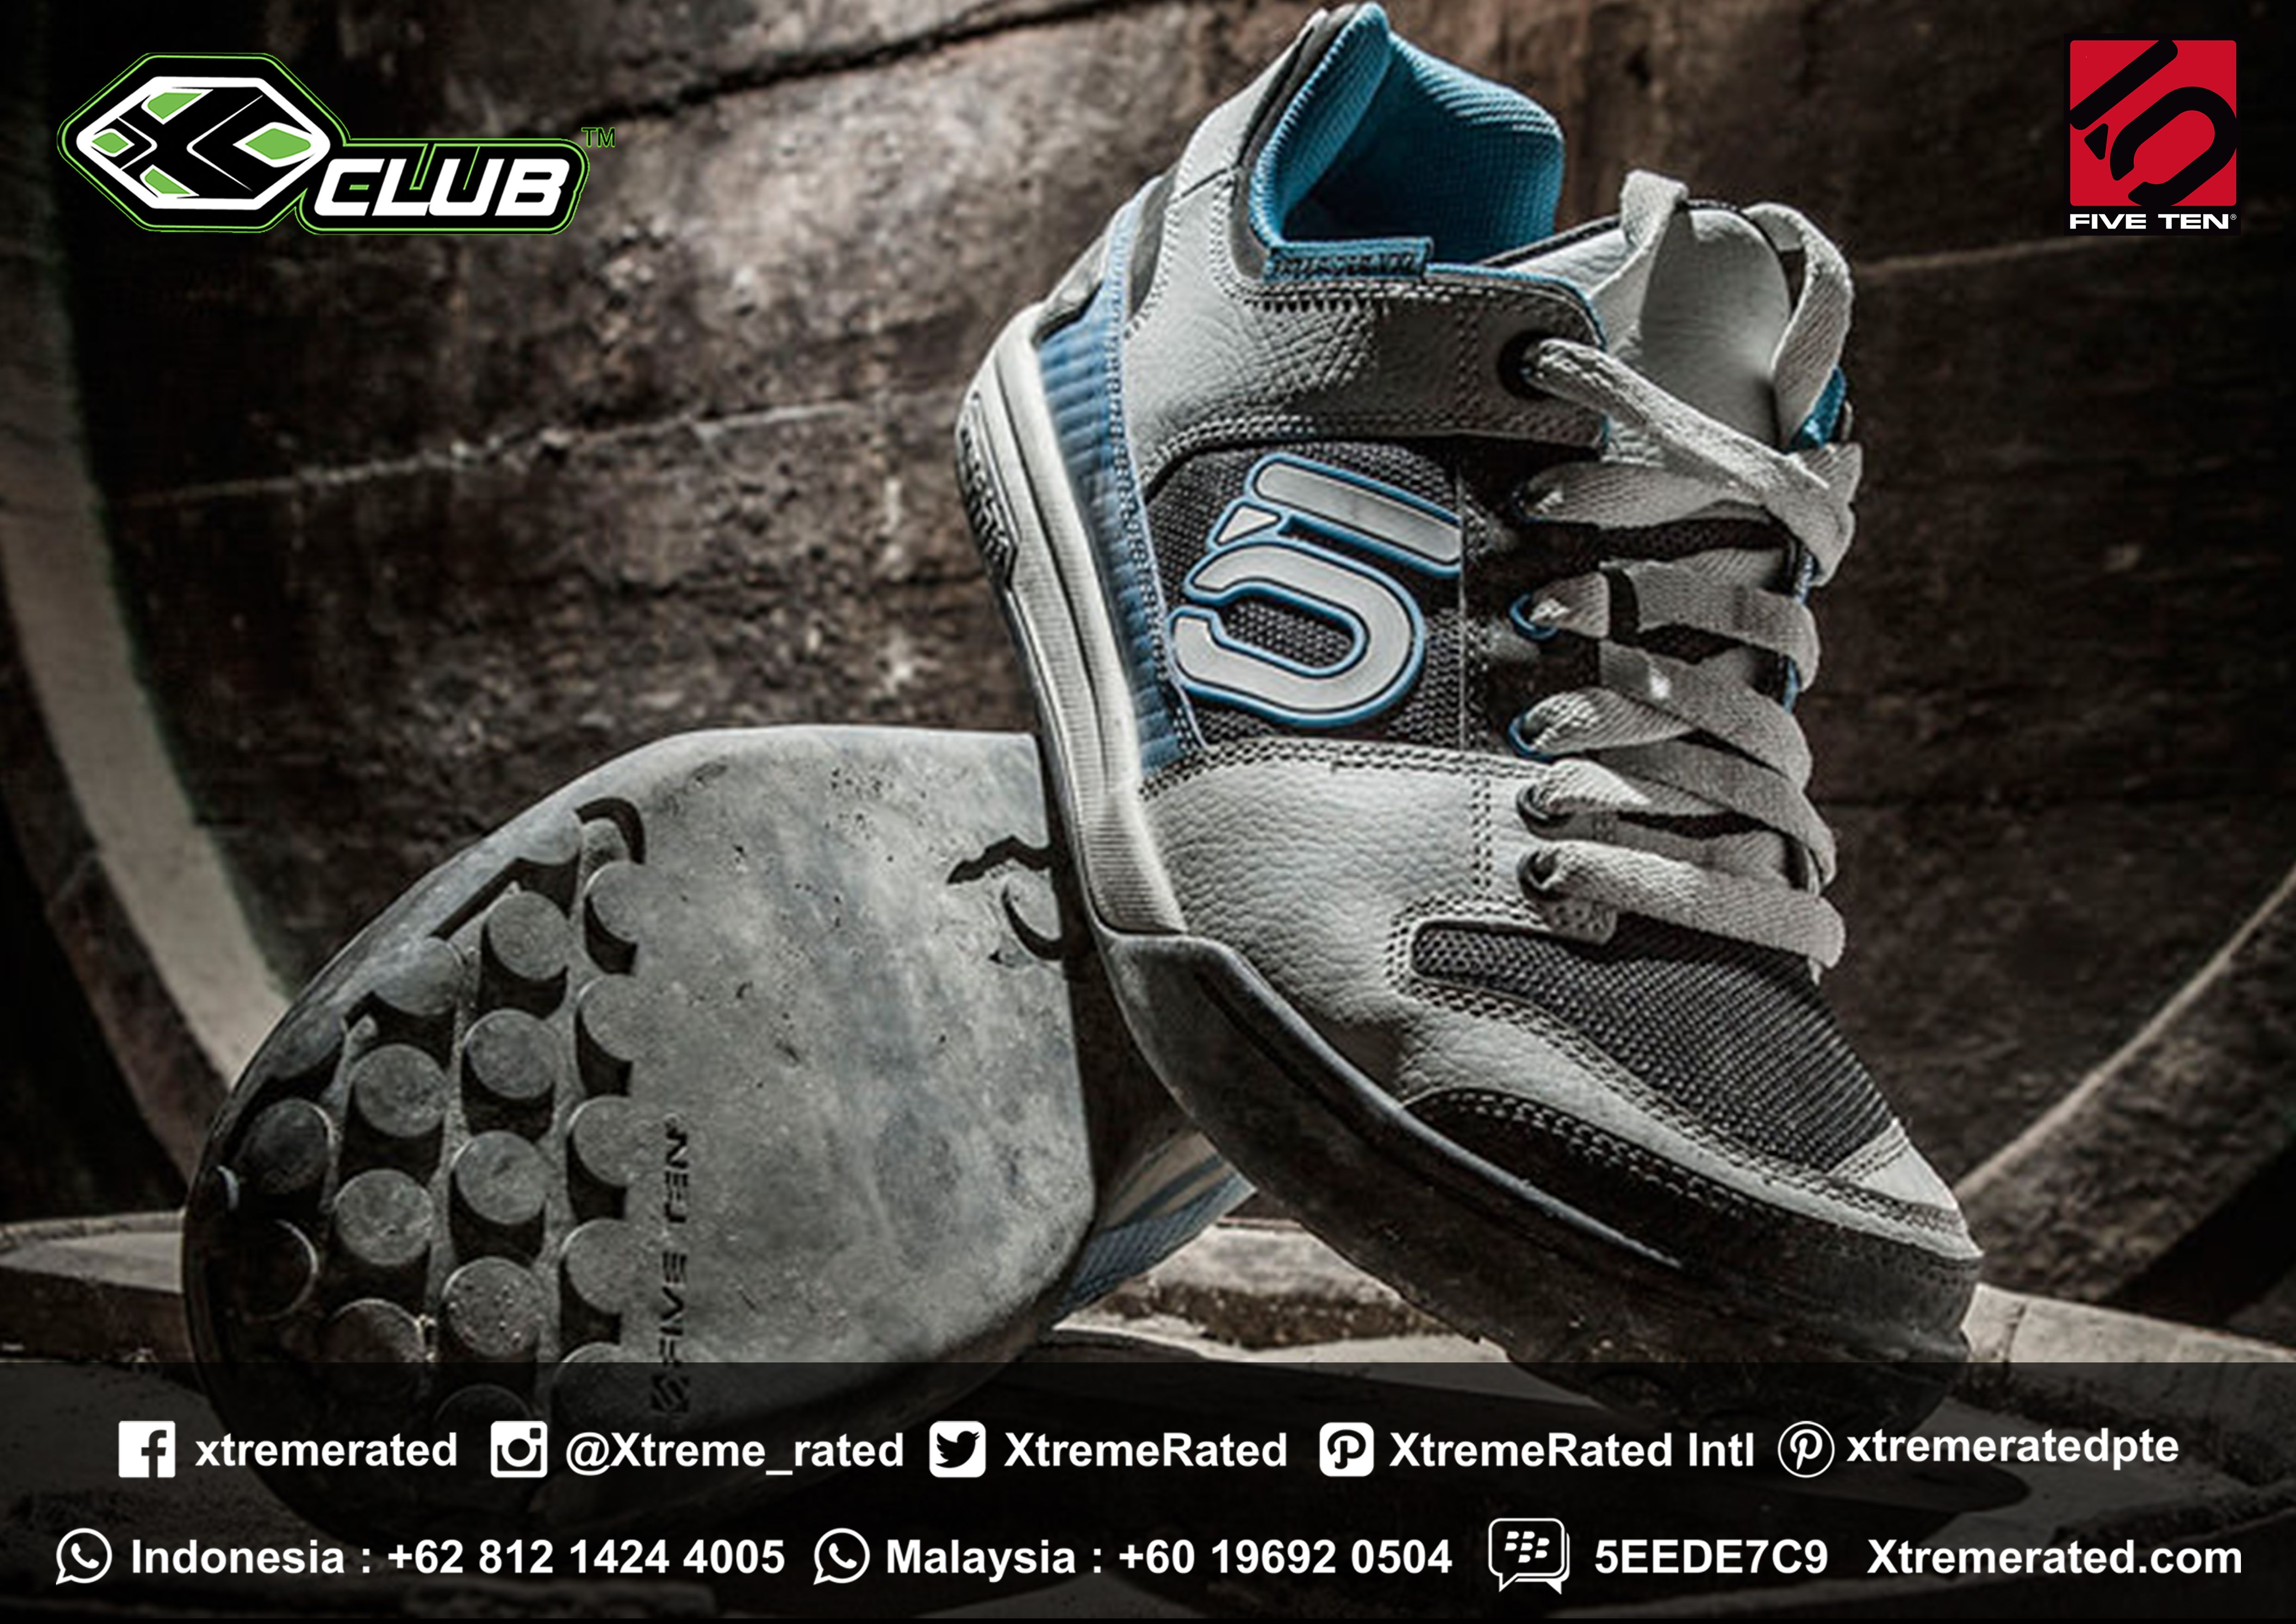 Five Ten Freerider Good For All Day Riding Performance Available In All Xclub Leading Stores Xtremerated Xclub Fiveten Bicycle Bike Saucony Sneaker Shoes